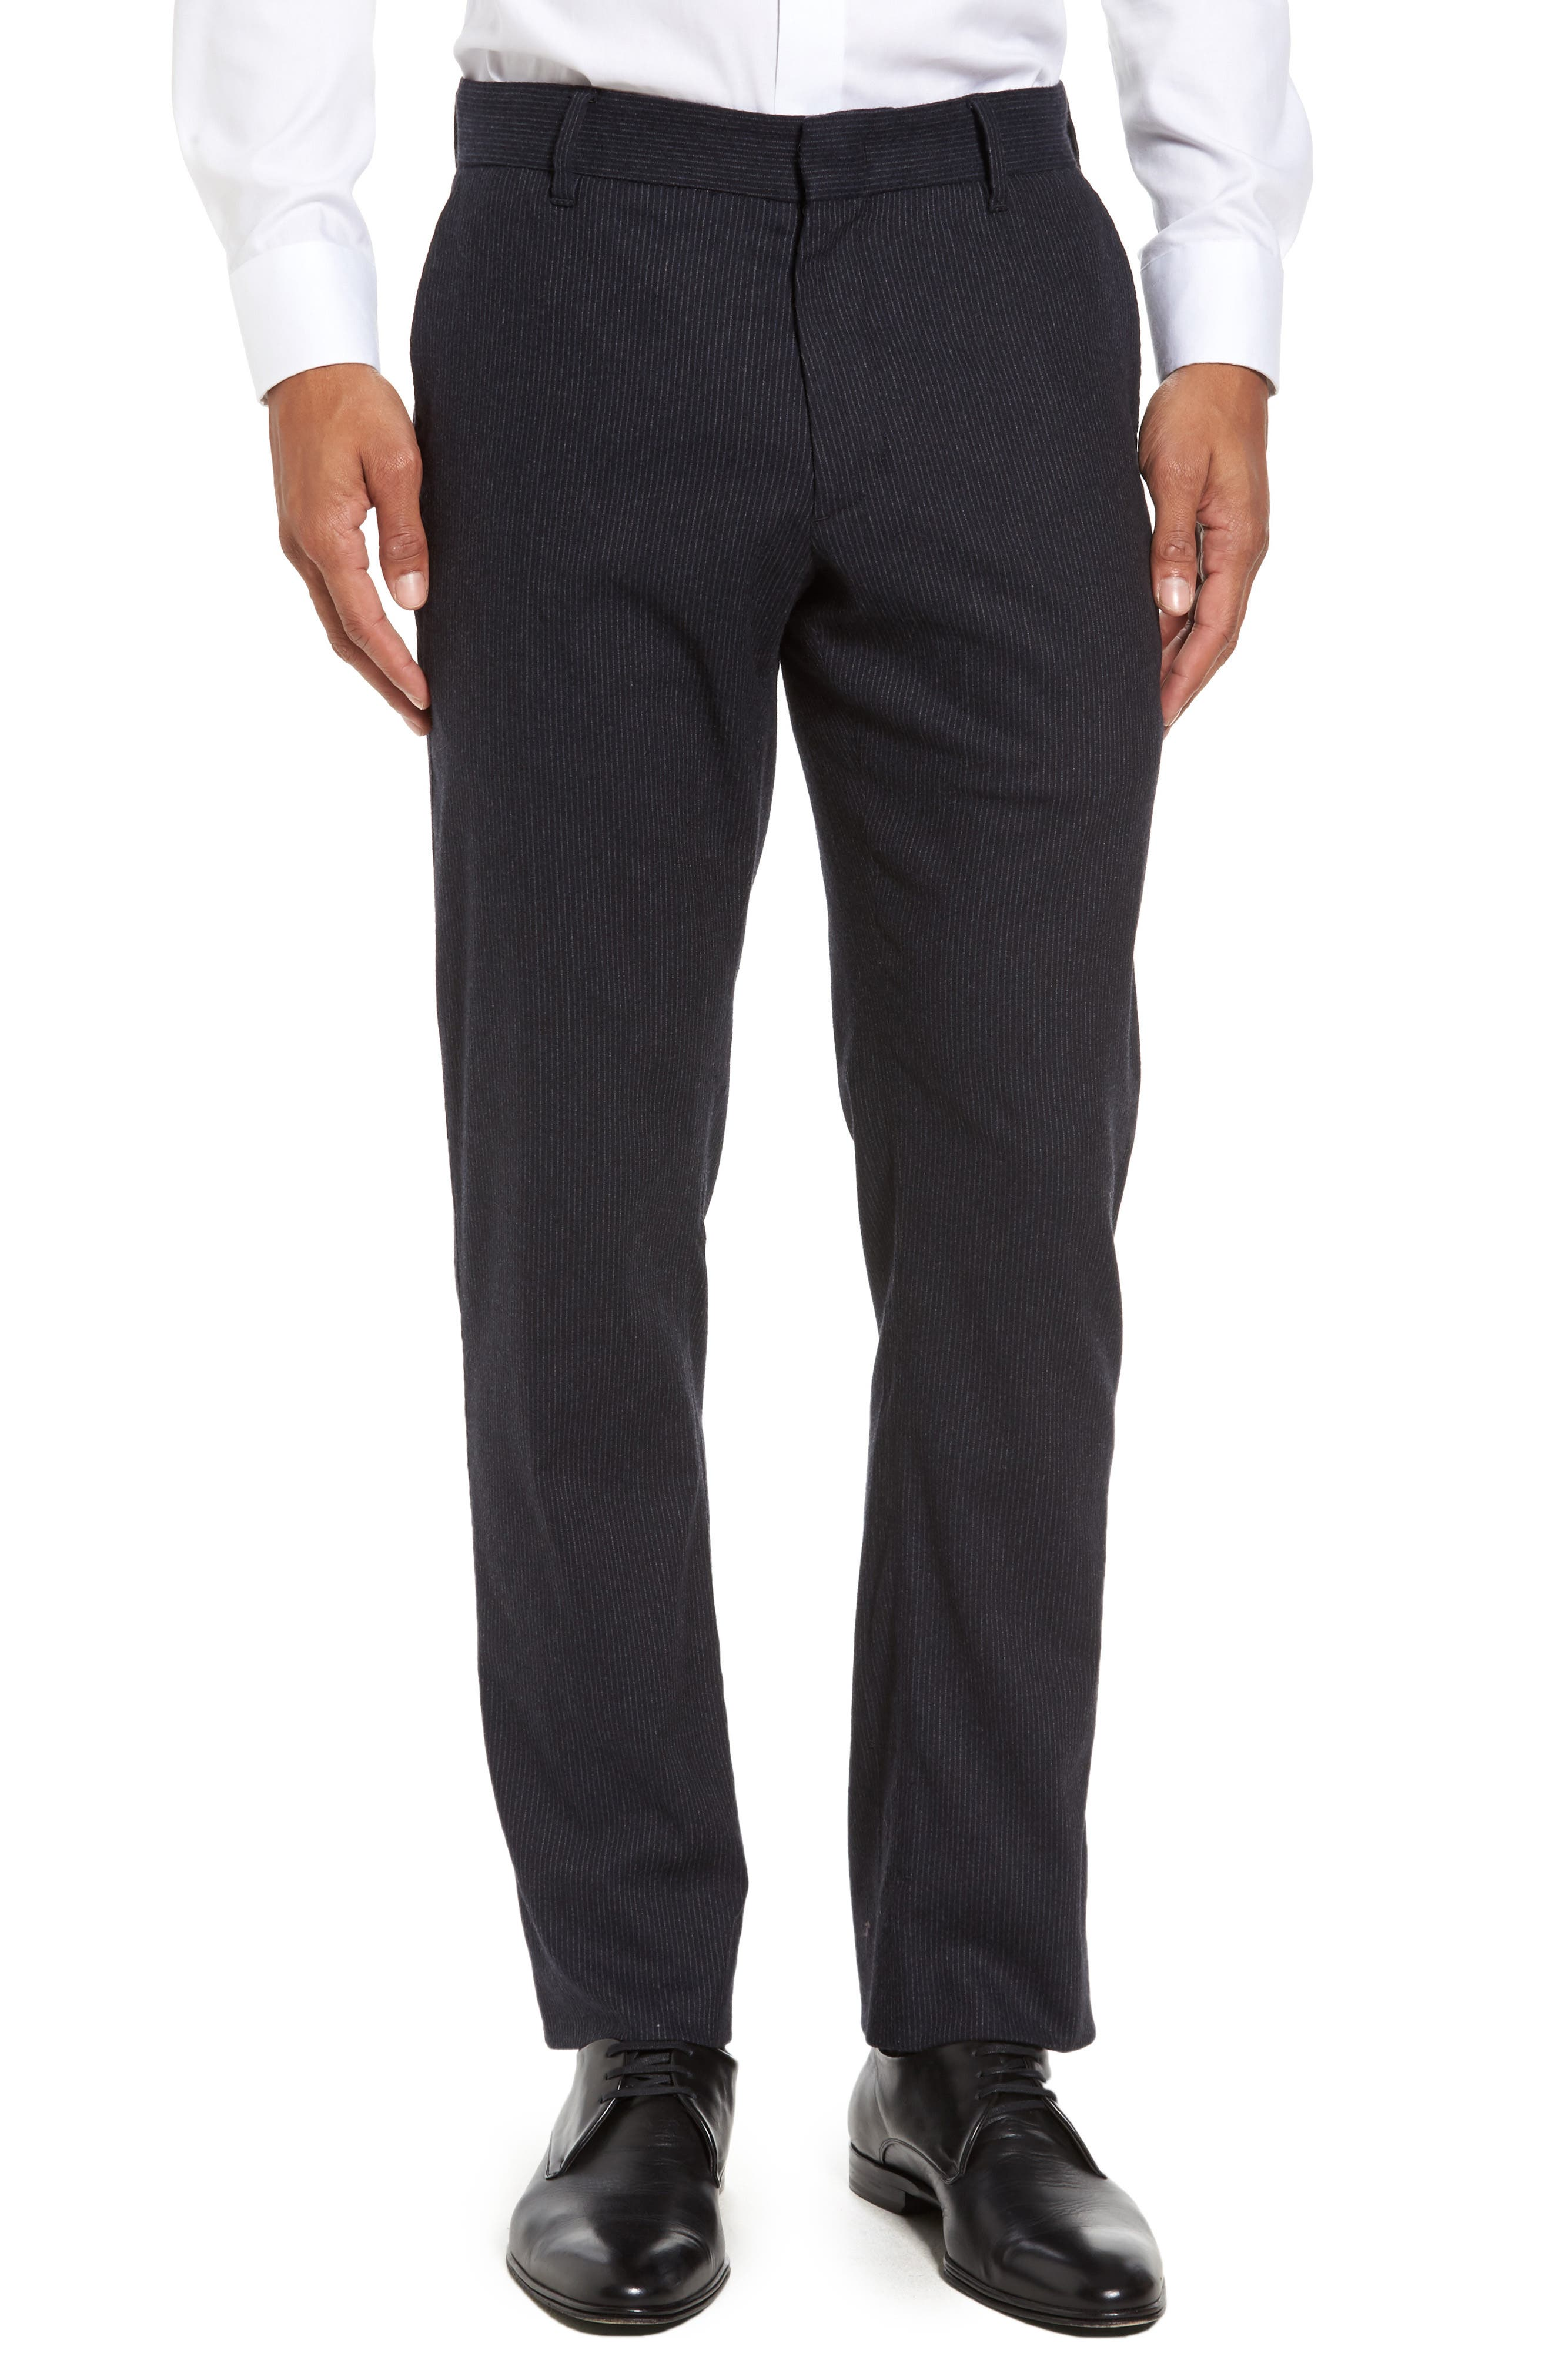 Rushmore Pinstripe Stretch Wool Blend Trousers,                         Main,                         color, Navy